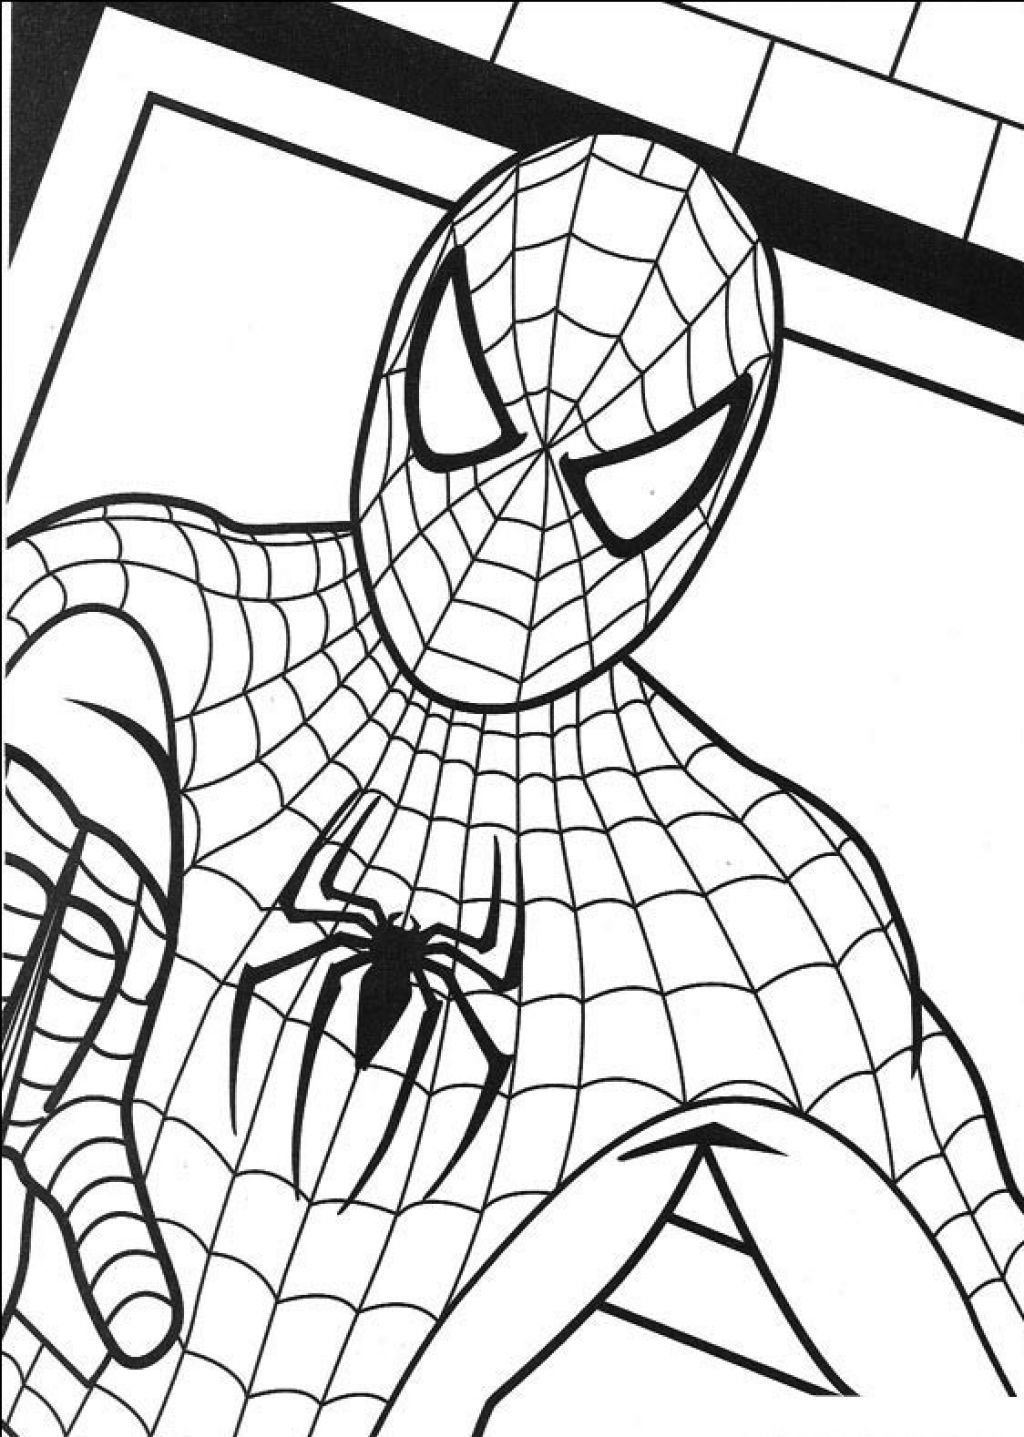 kids coloring pages spiderman | Free Printable Spiderman Coloring Pages For Kids ...